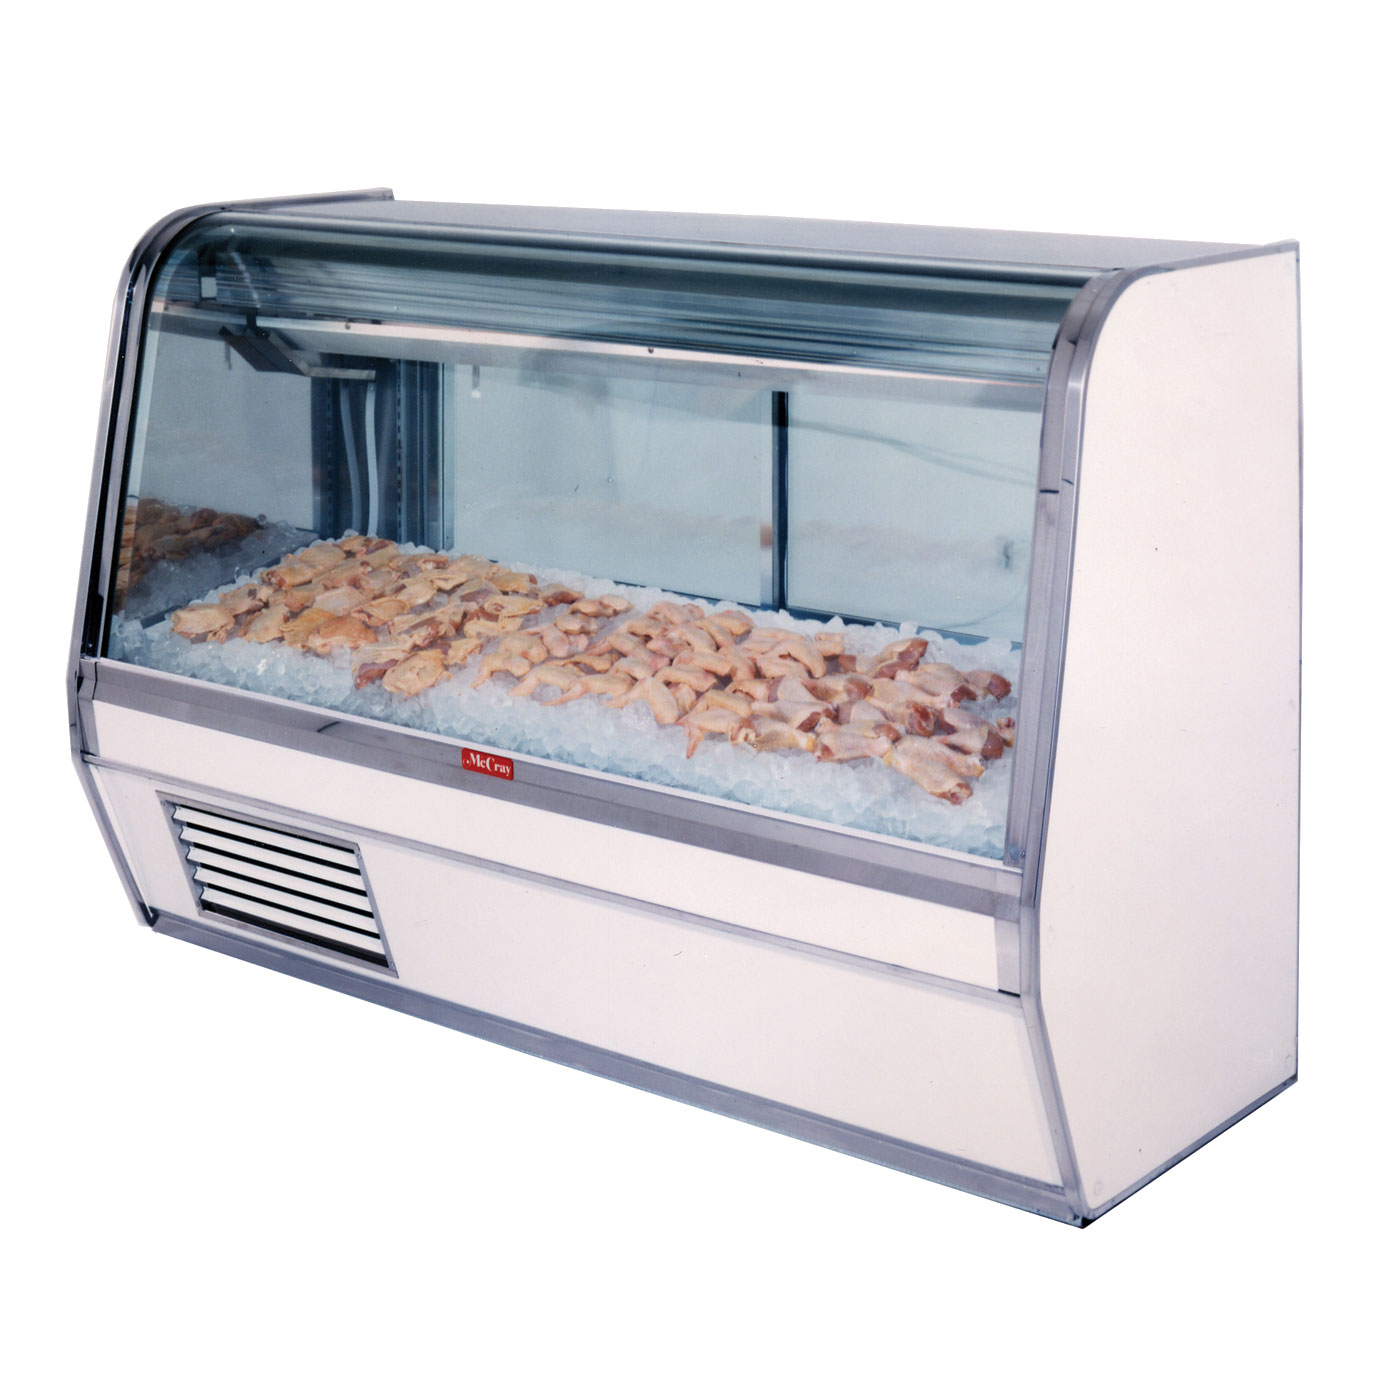 Howard-McCray SC-CFS32E-6C-LED display case, deli seafood / poultry